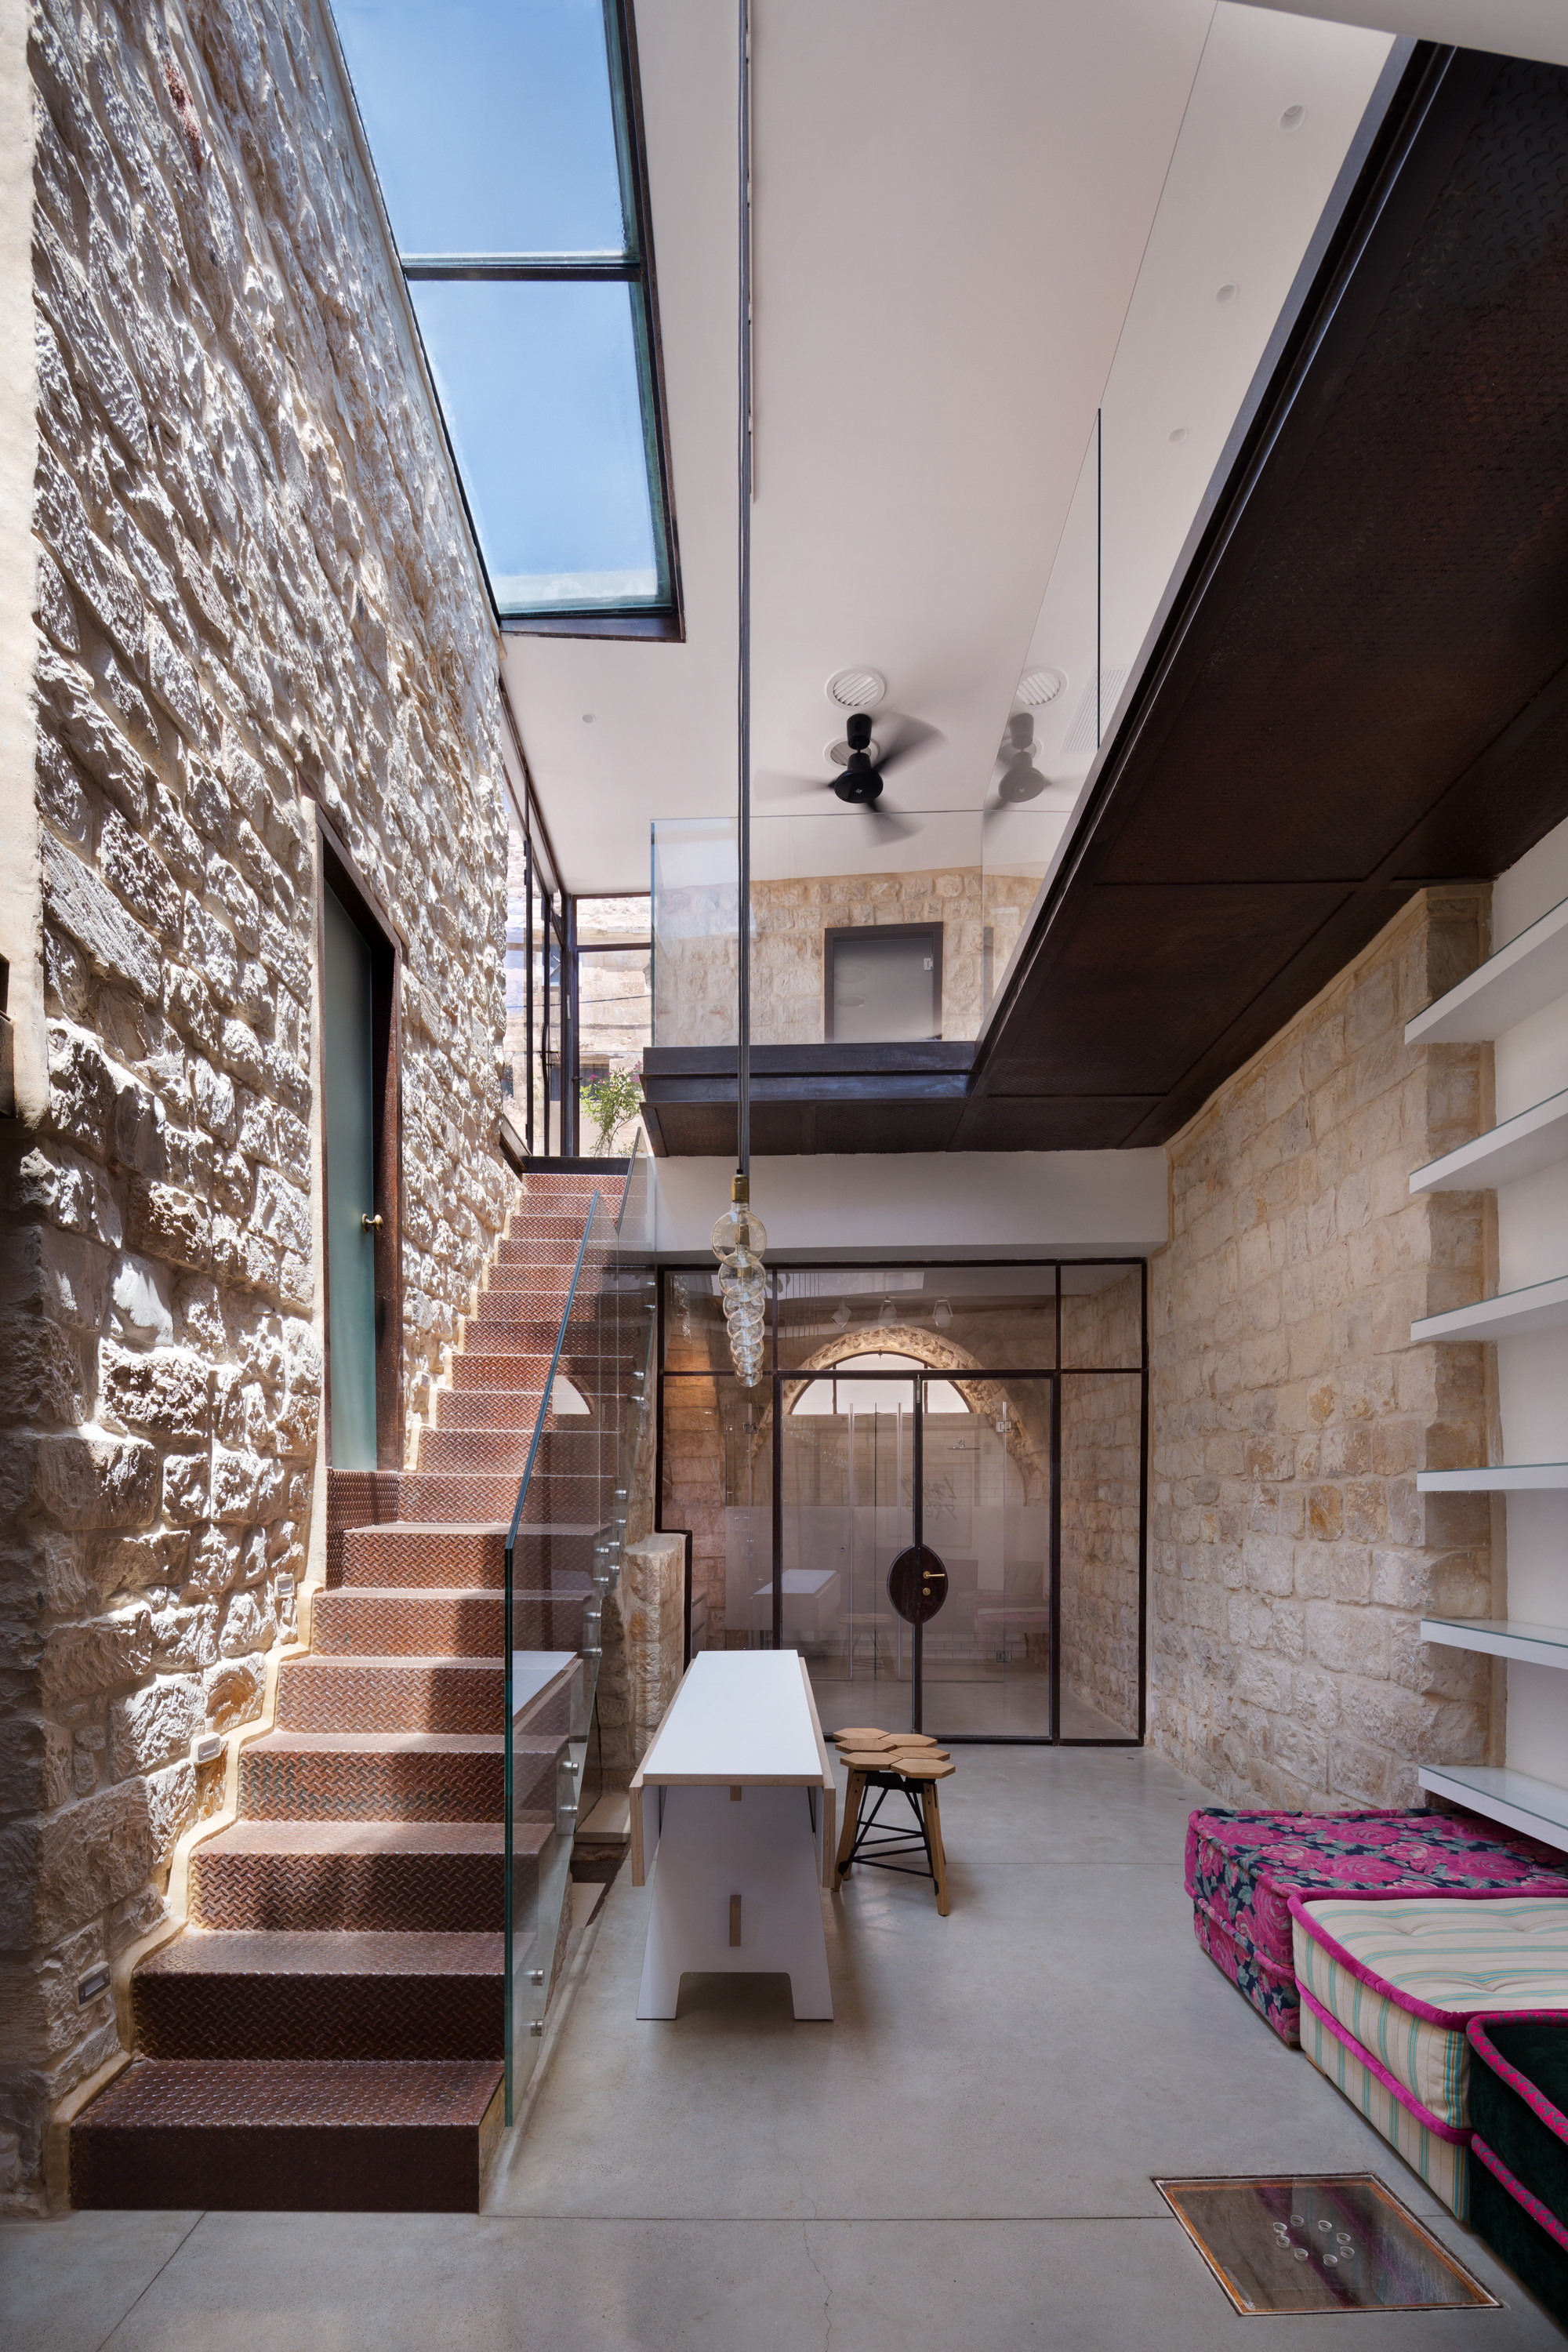 Casa vertical de pedra henkin shavit architecture for Design casa